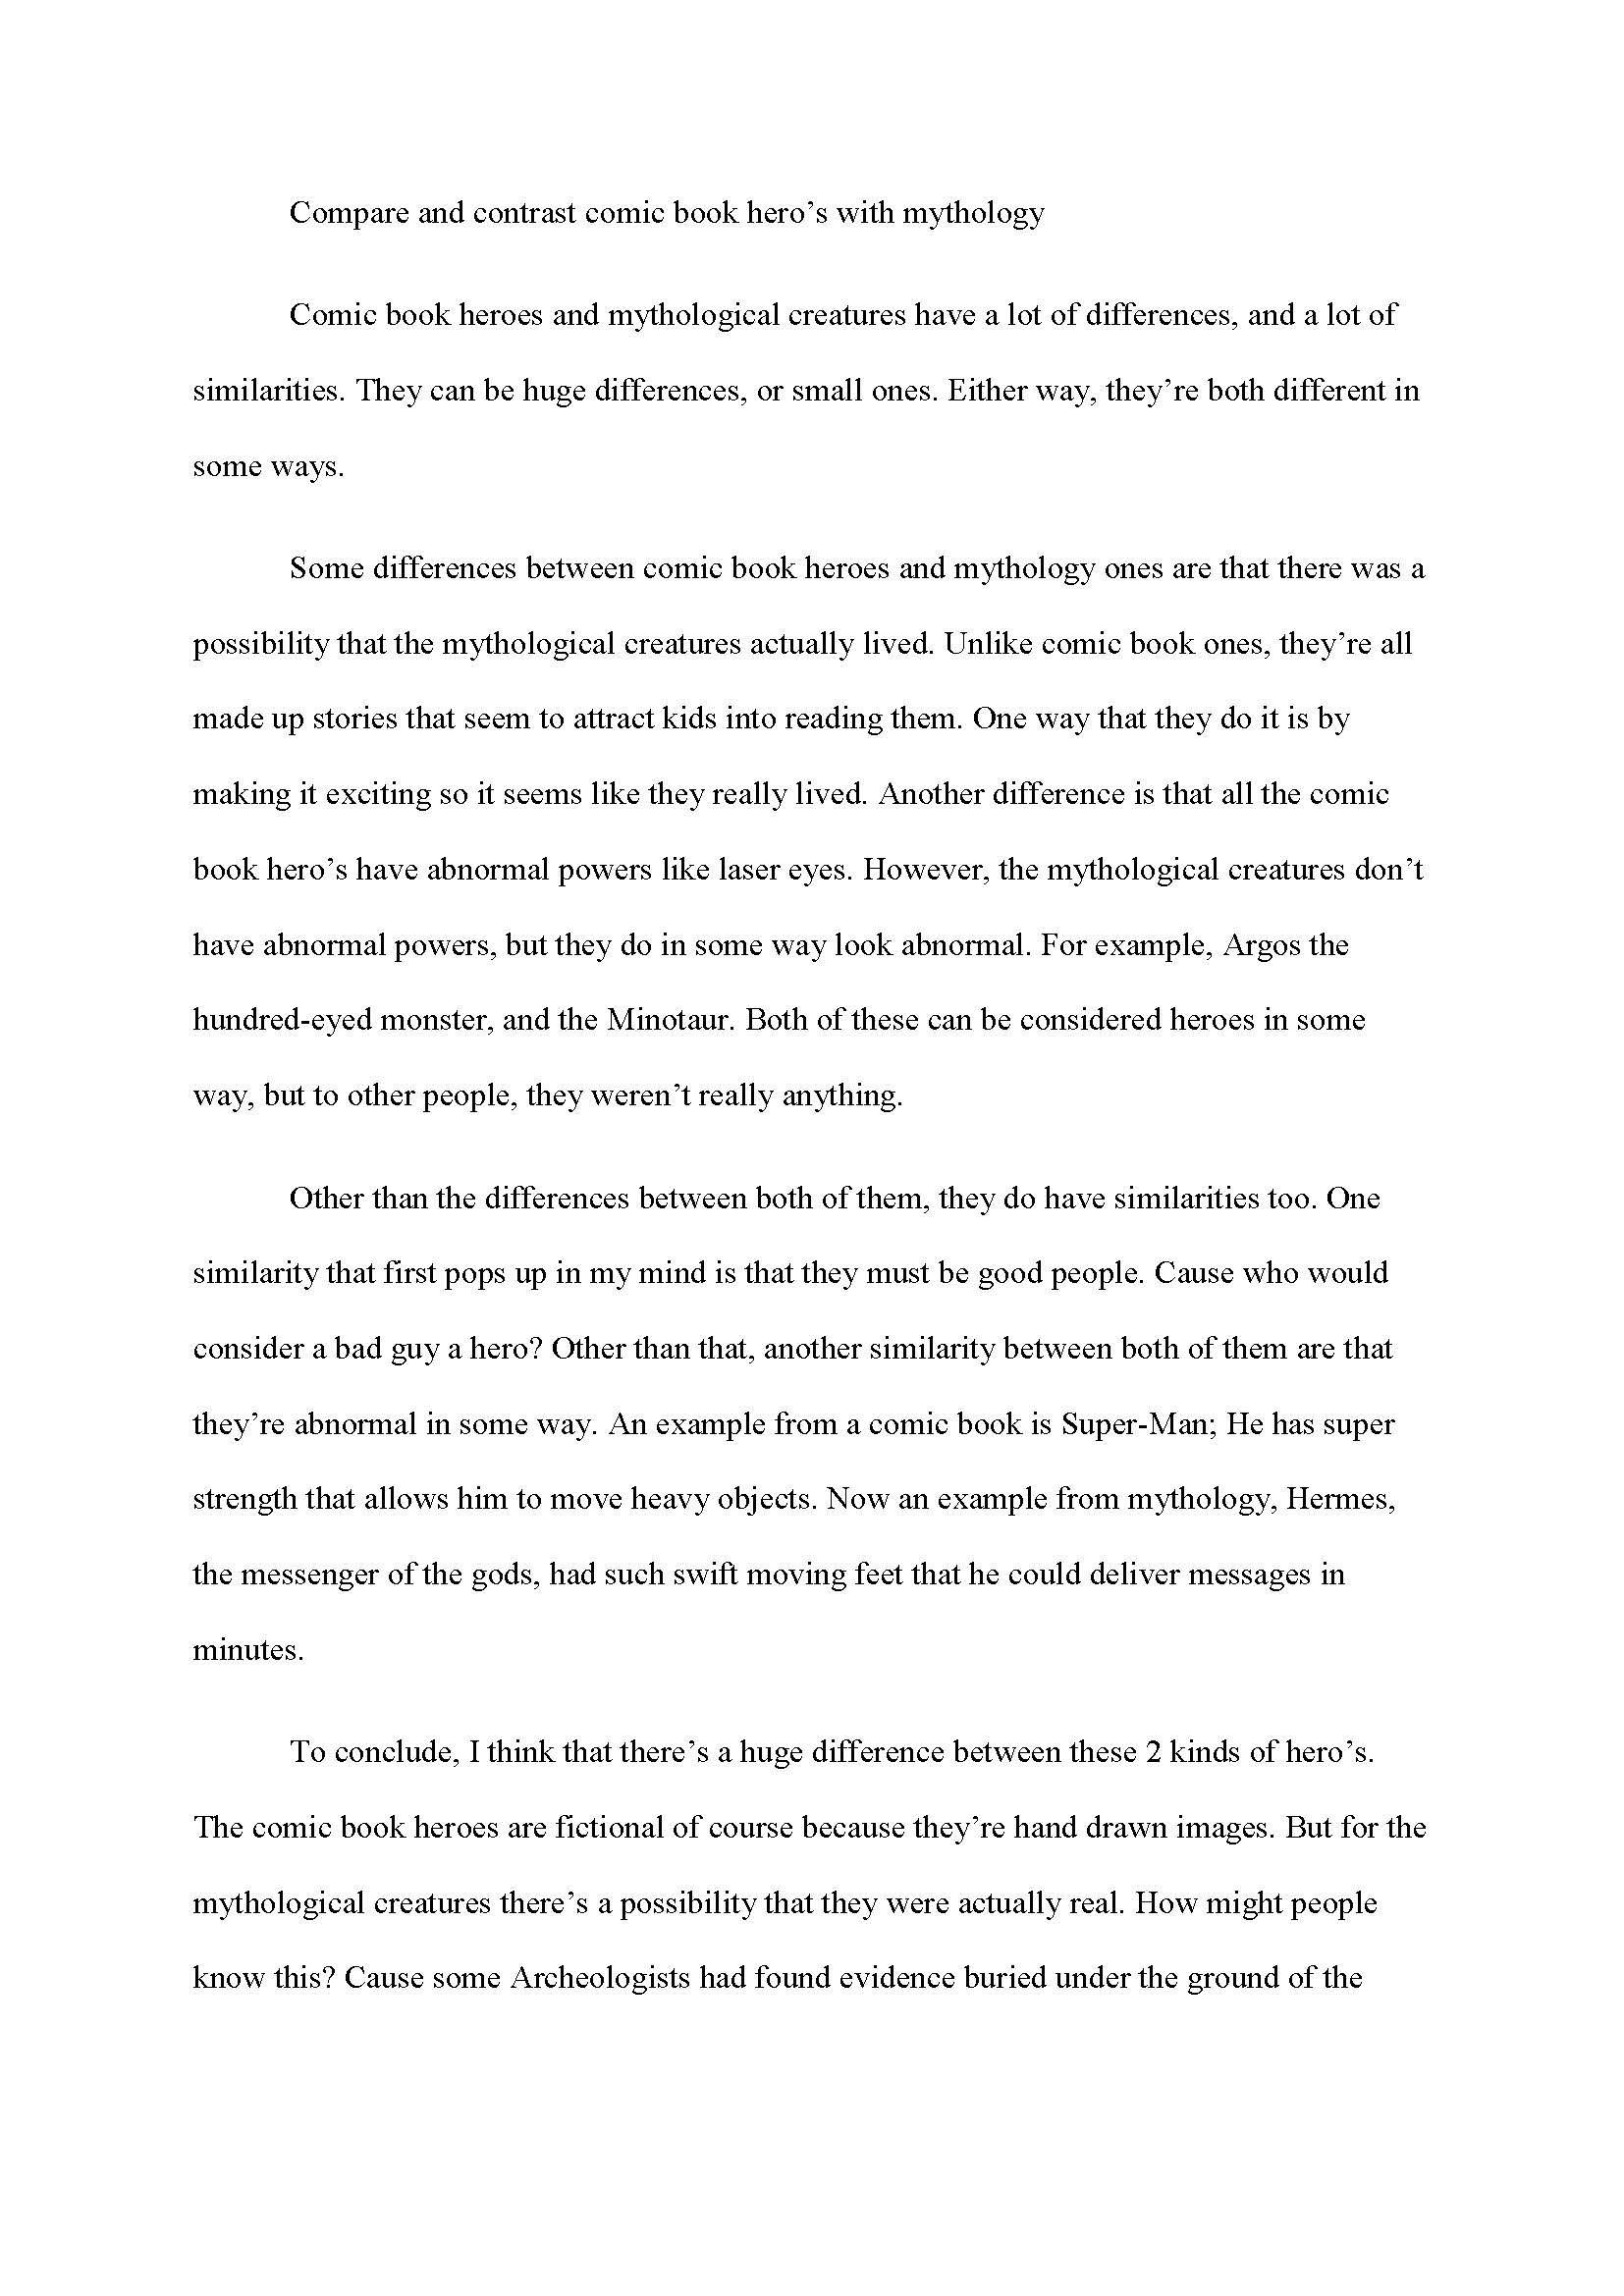 001 Exceptional Compare And Contrast Essay Example College Picture  For Topic Free ComparisonFull